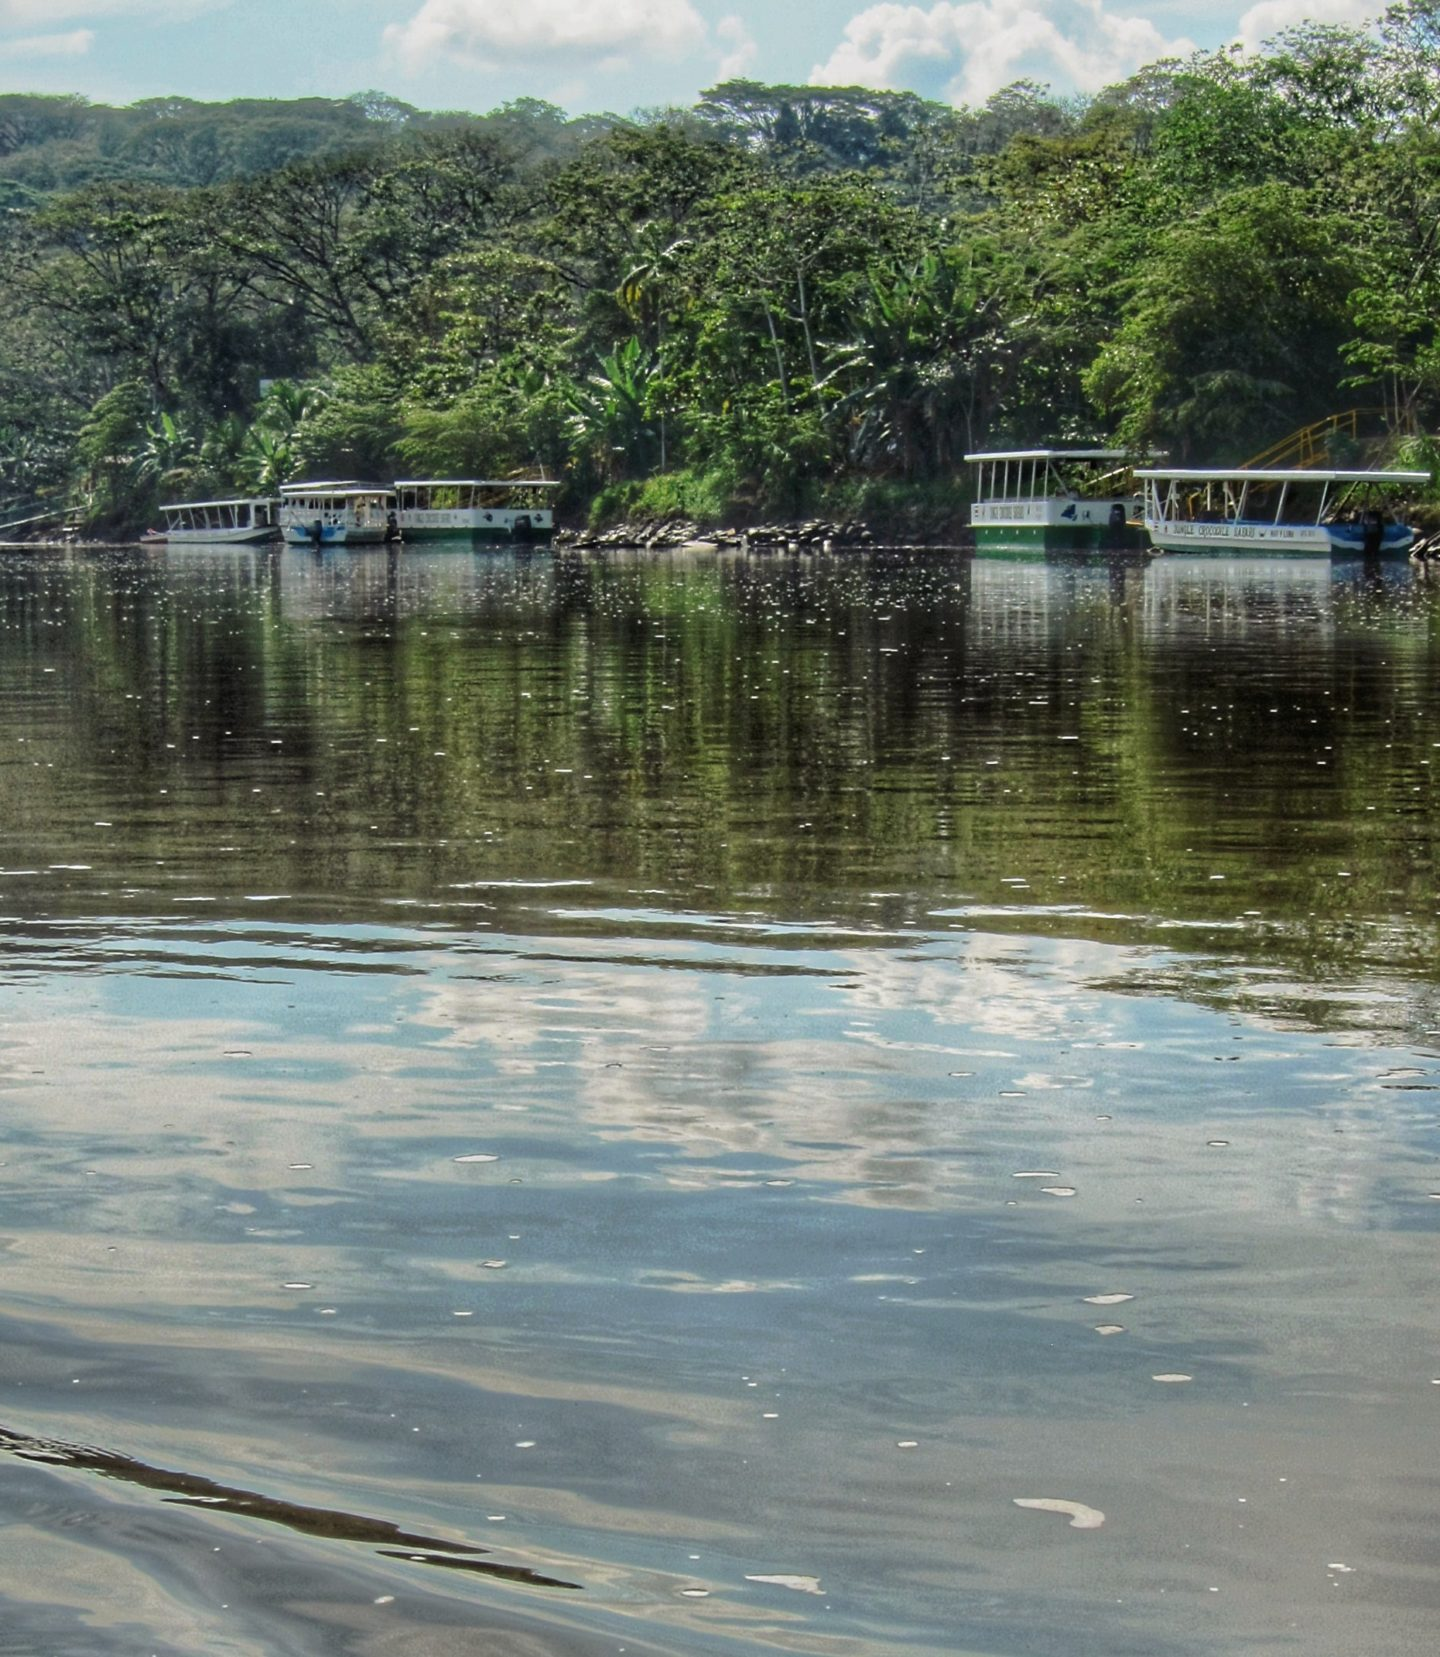 Boats on the Rio Tarcoles, Costa Rica